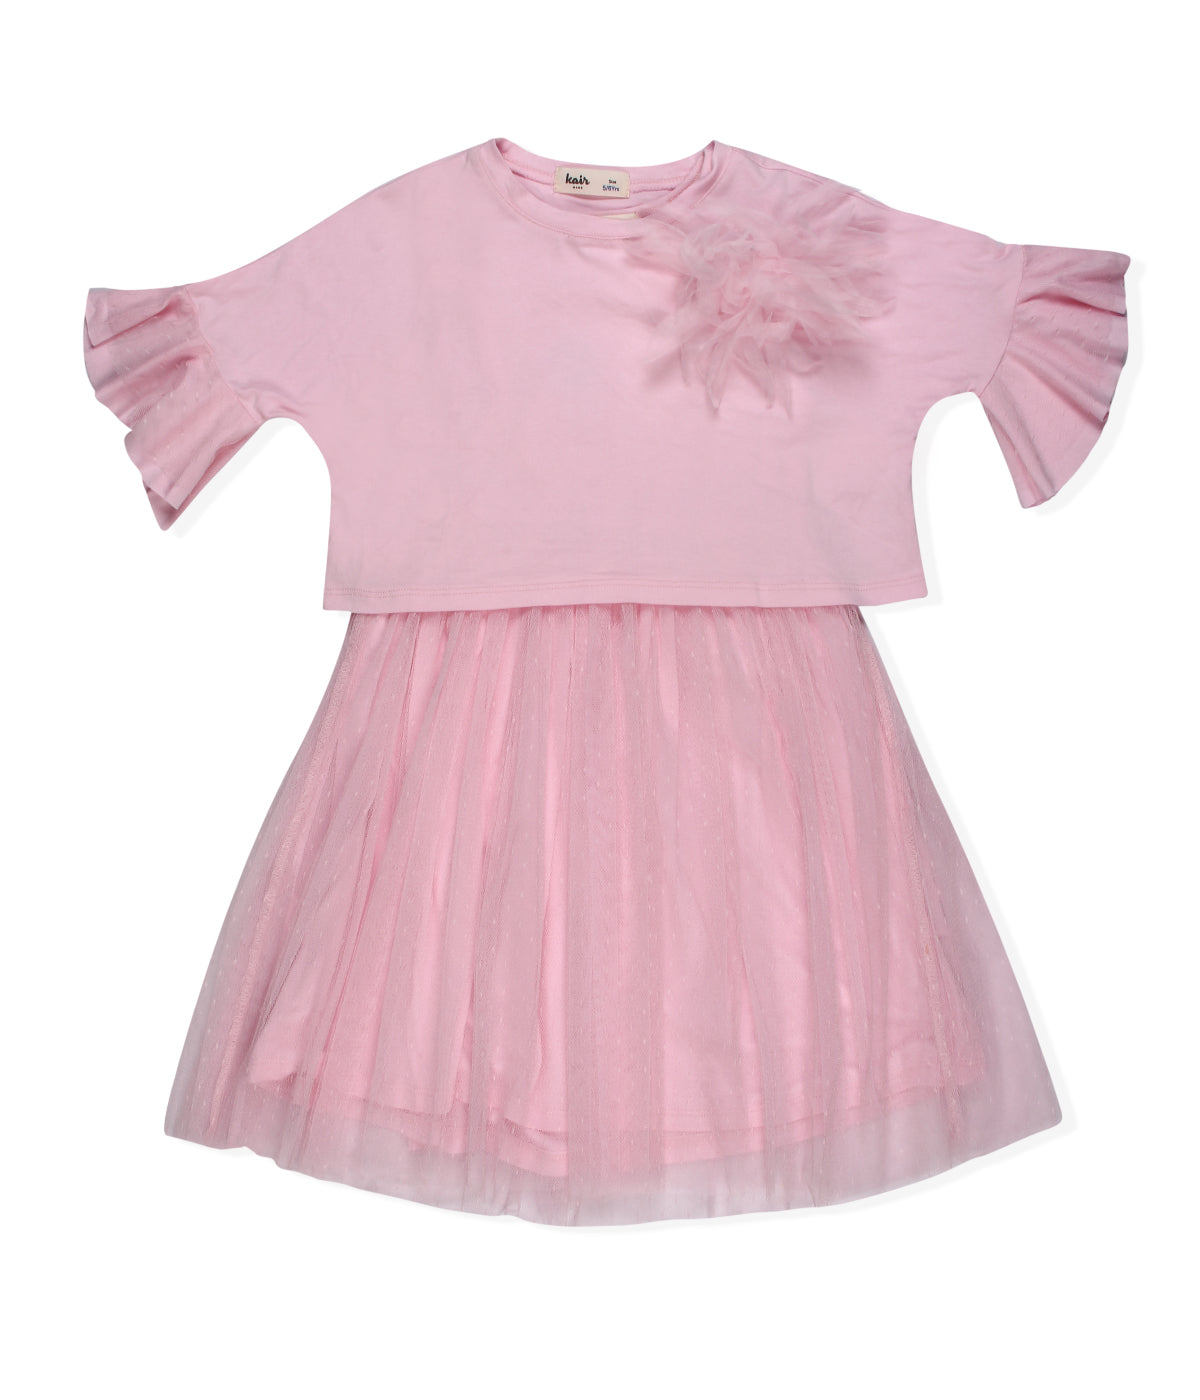 Baby Girls Party dress with crop top